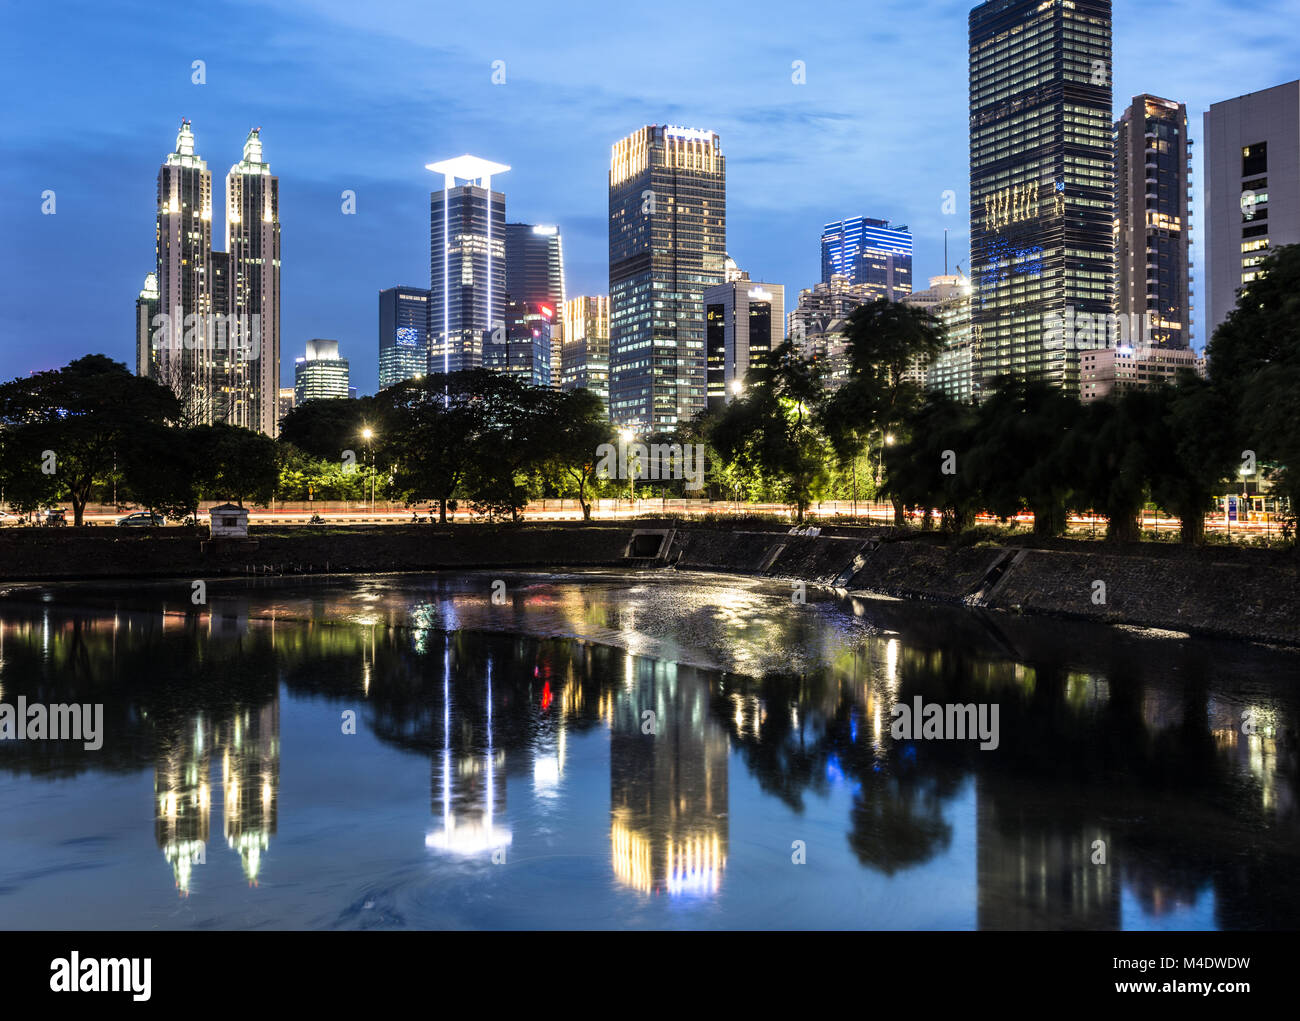 Stunning reflection of office buildings and luxury apartment towers in Jakarta business district during blue hour - Stock Image